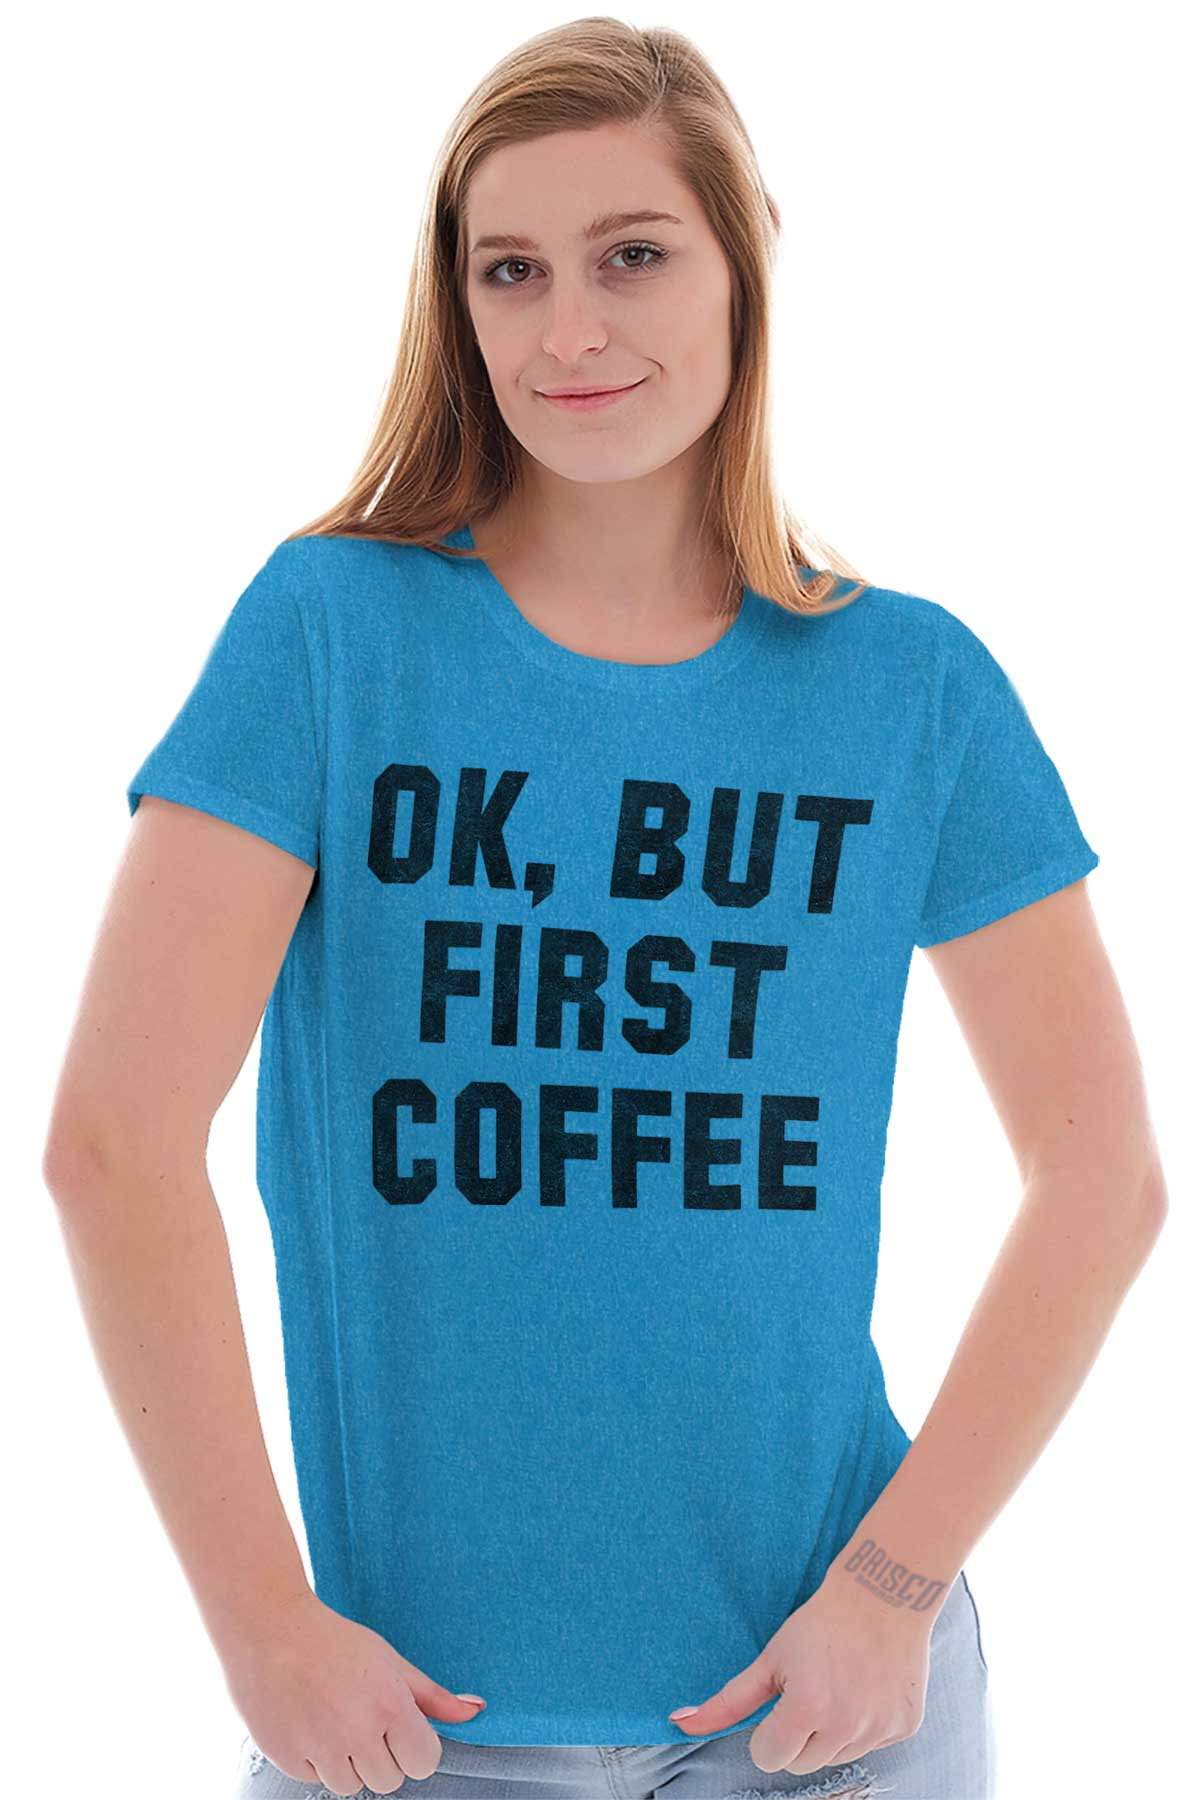 BUT FIRST COFFEE SLOGAN FUNNY CAFFEINE GIFT MORNING OK FASHION T SHIRT TEE TOP S